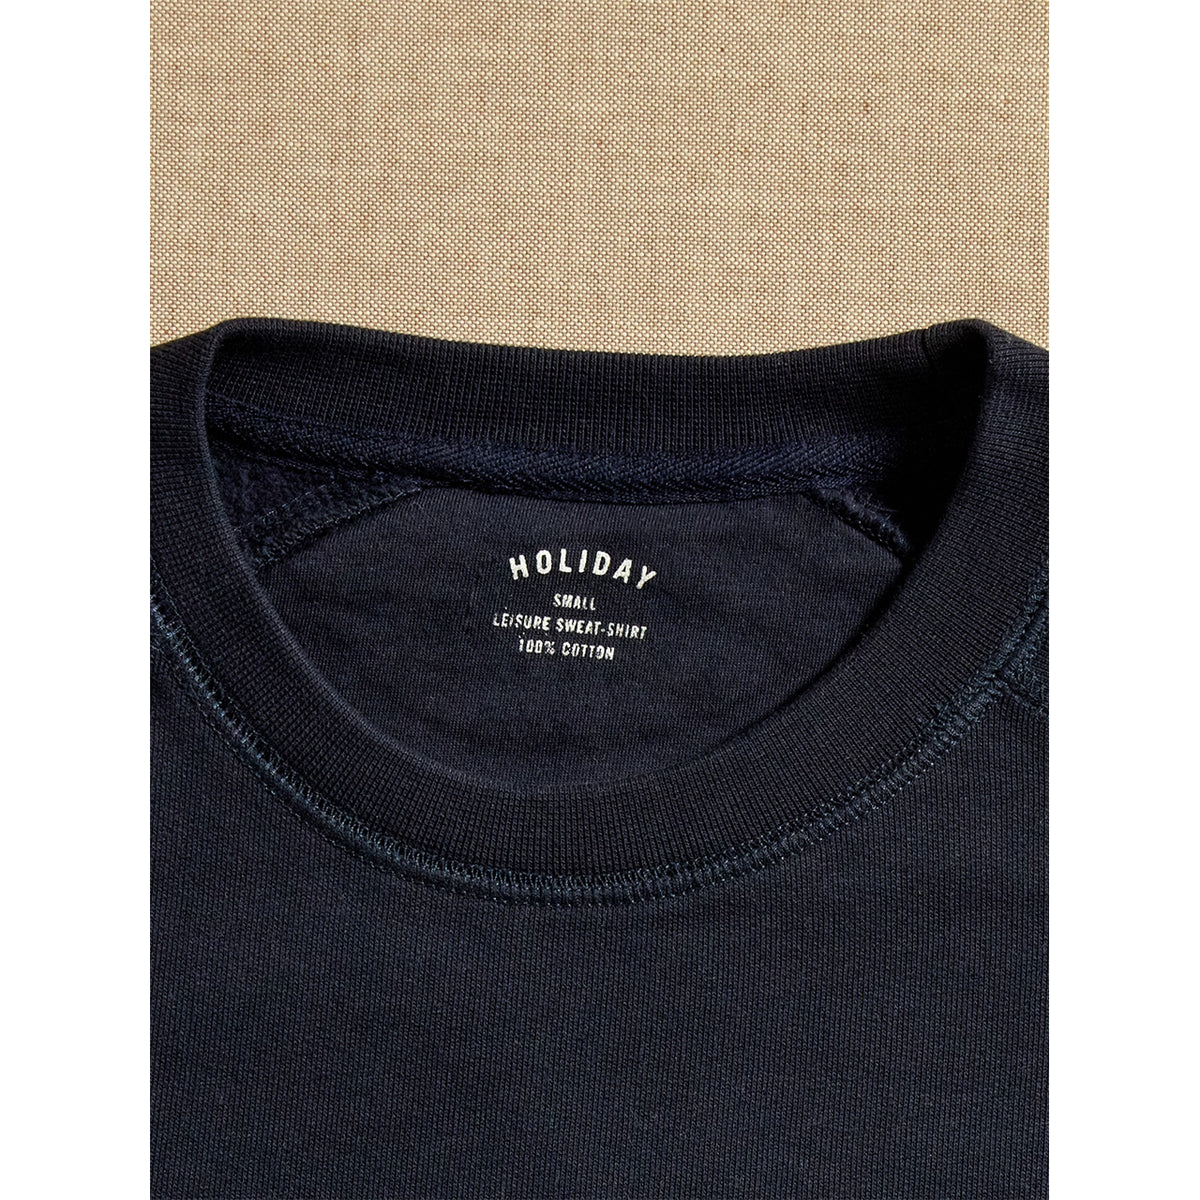 Navy blue leisure sweatshirt